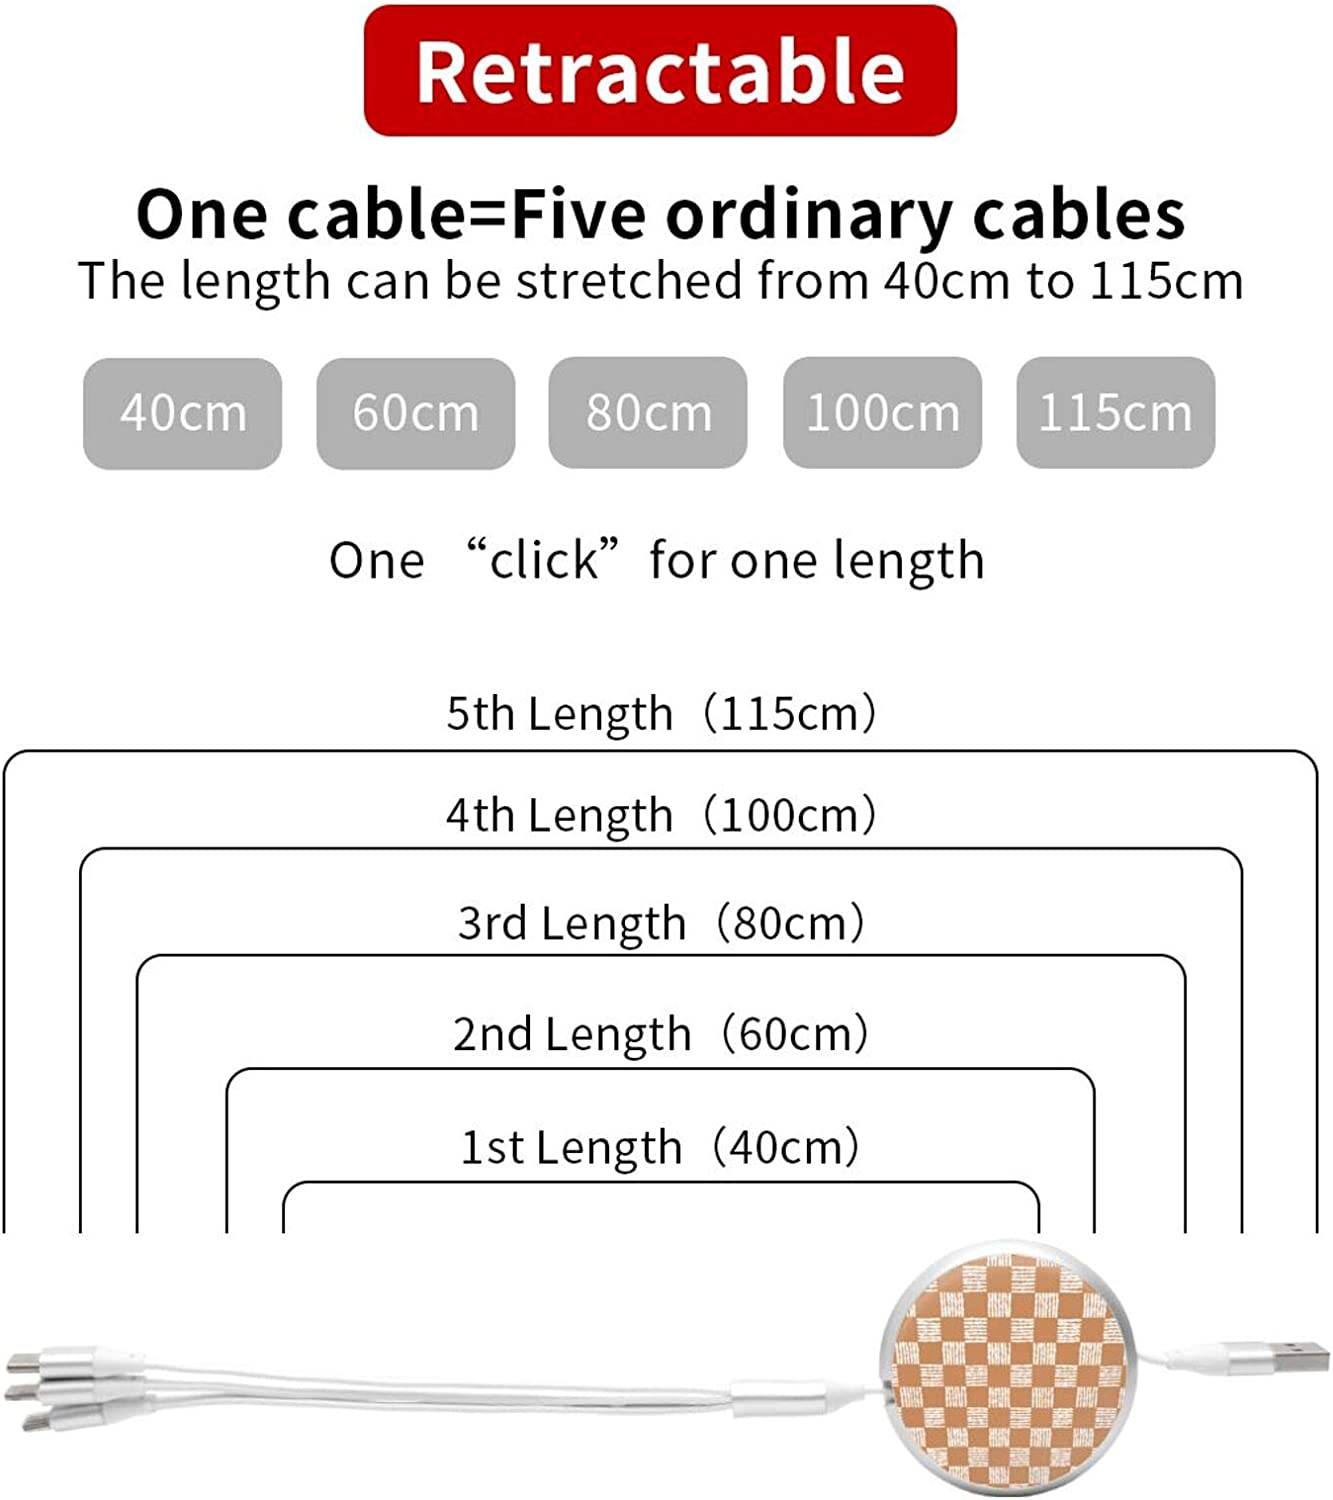 Multi Charging Cable Portable 3 in 1 Simple Pattern of Chess Cells USB Cable USB Power Cords for Cell Phone Tablets and More Devices Charging